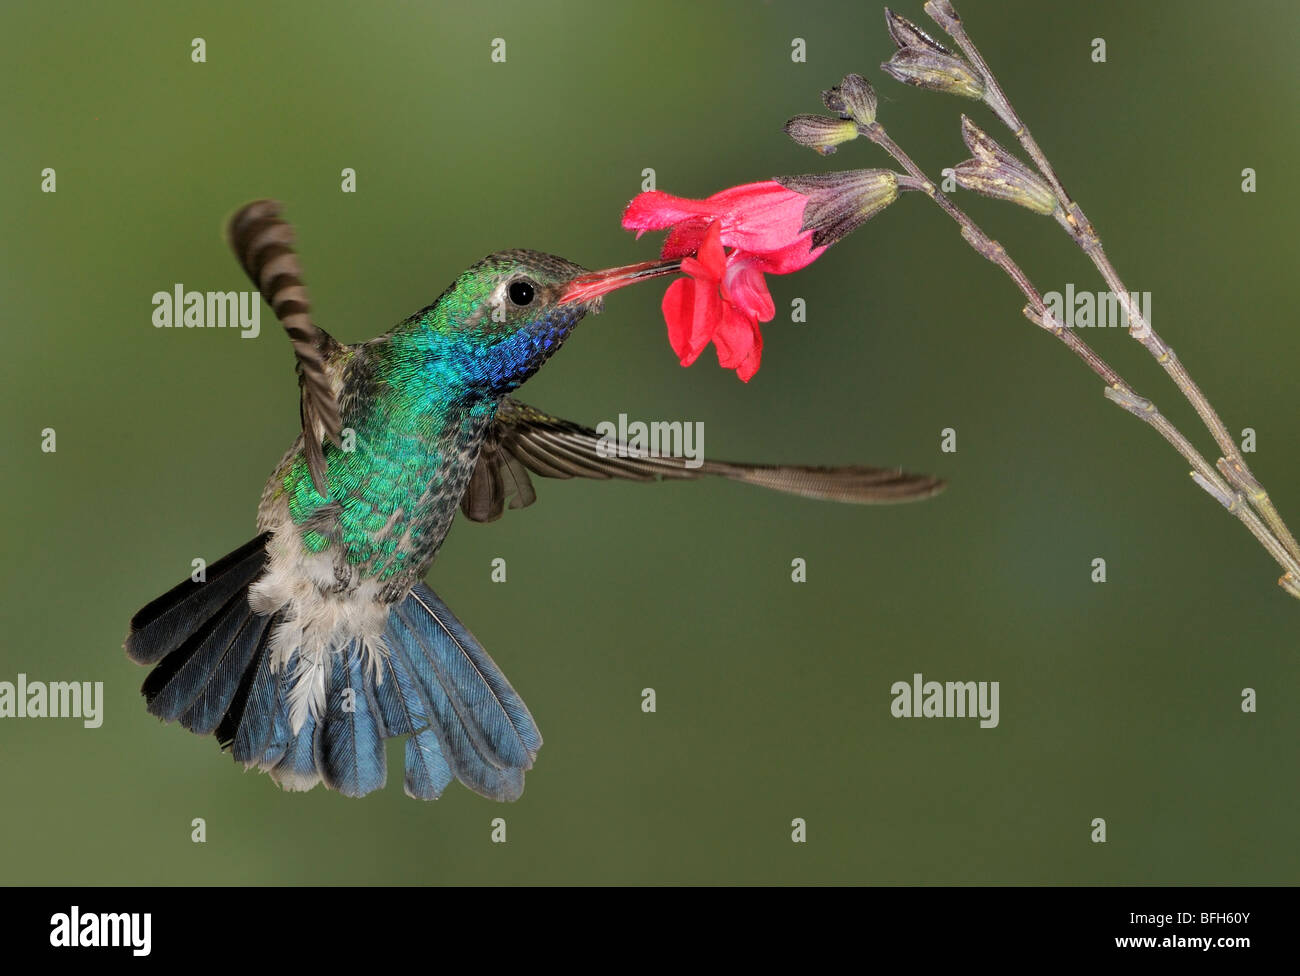 Homme large-billed Hummingbird (Cynanthus latirostris) planer à côté de fleur à tête d'éléphant Photo Stock